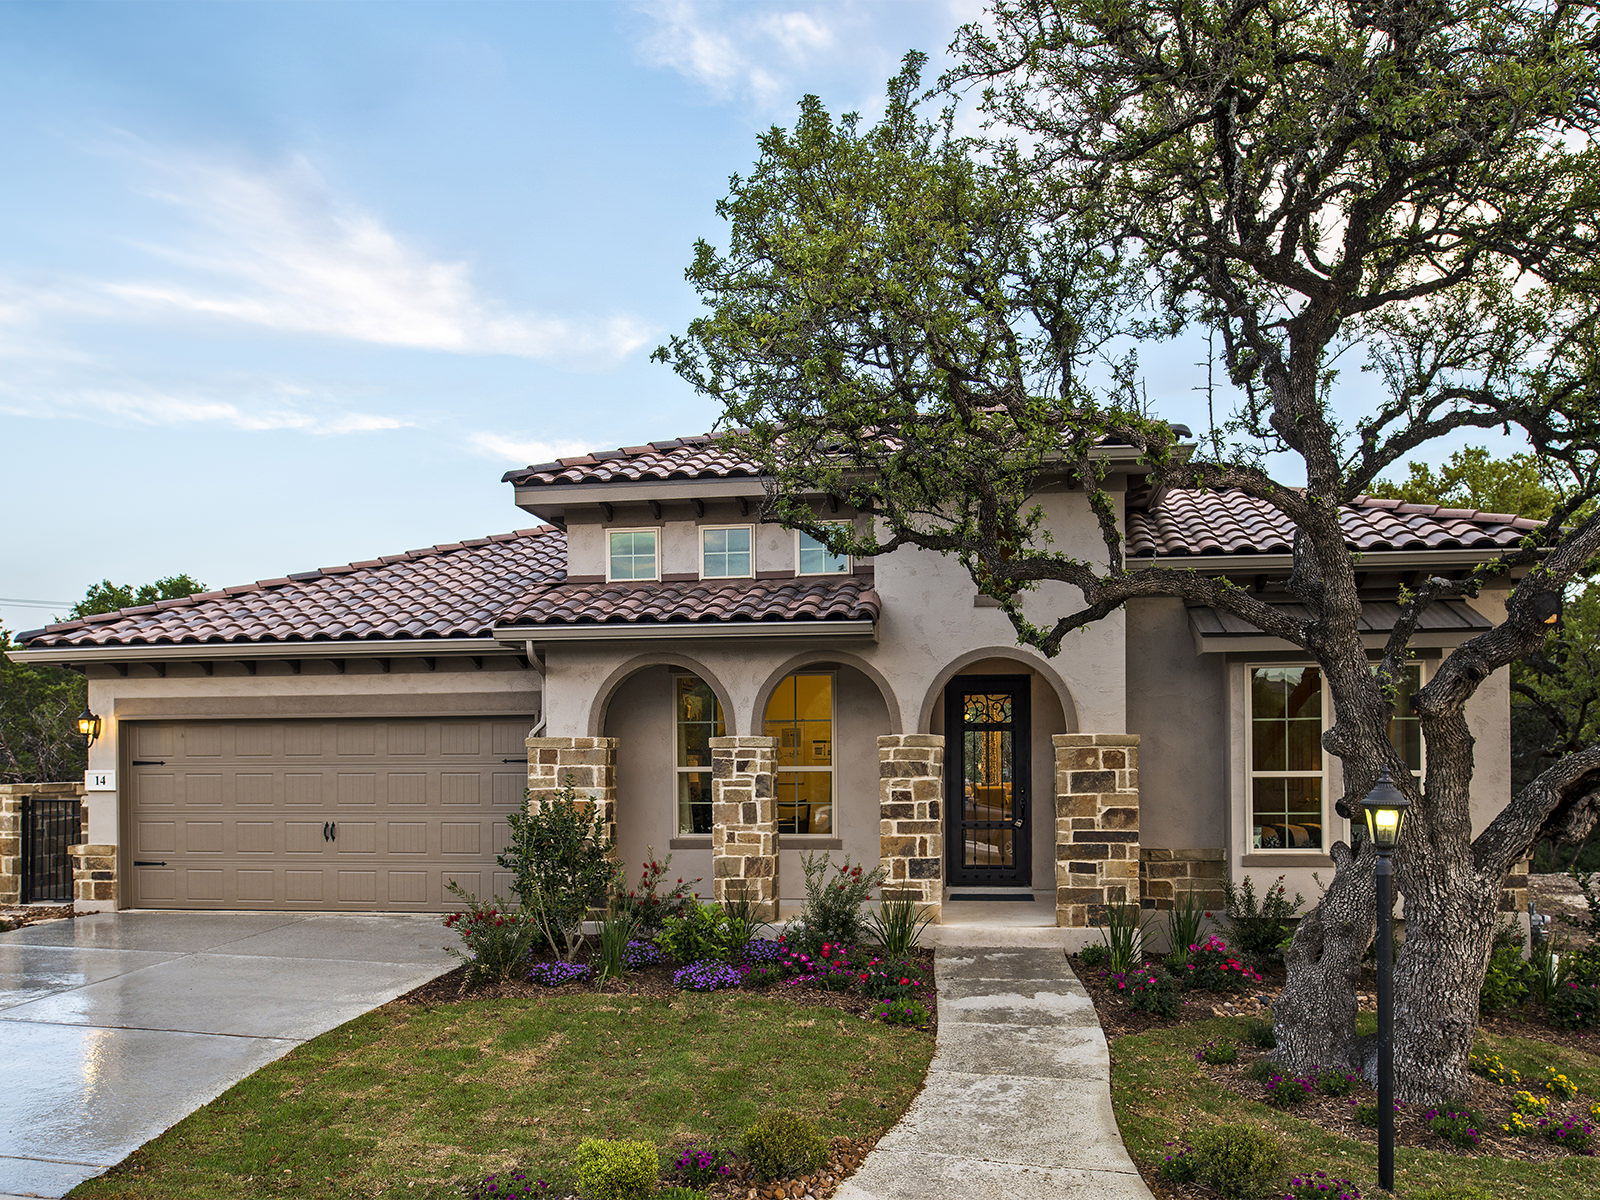 Take in the natural beauty of the hill country from your new Monterey home